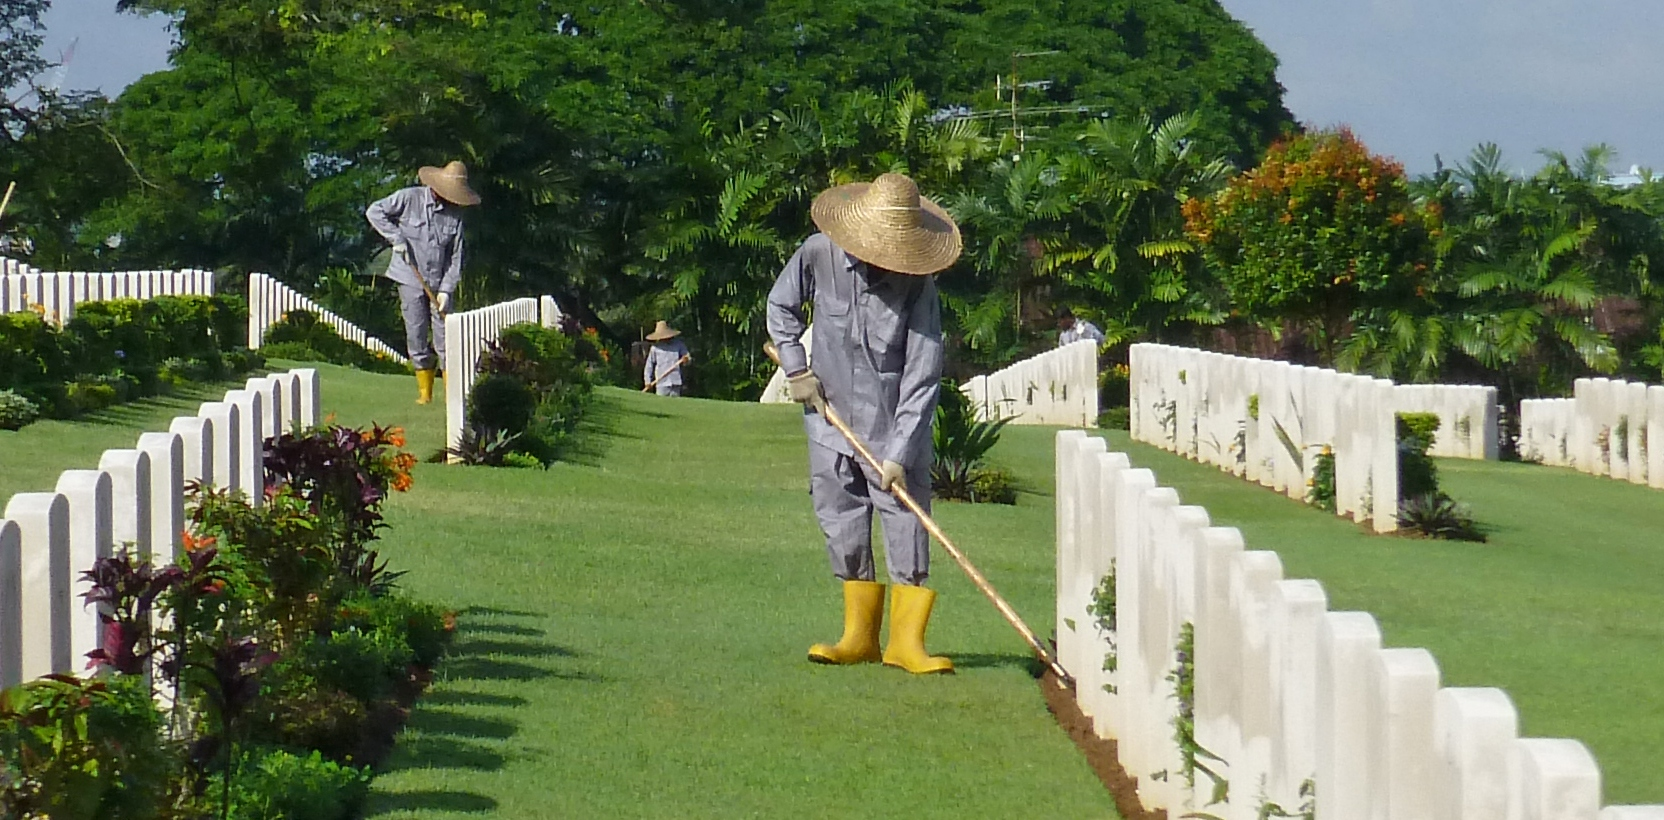 Gardeners tend graves at Kranji cemetery in Singapore. Photo credit: Commonwealth War Graves Commission